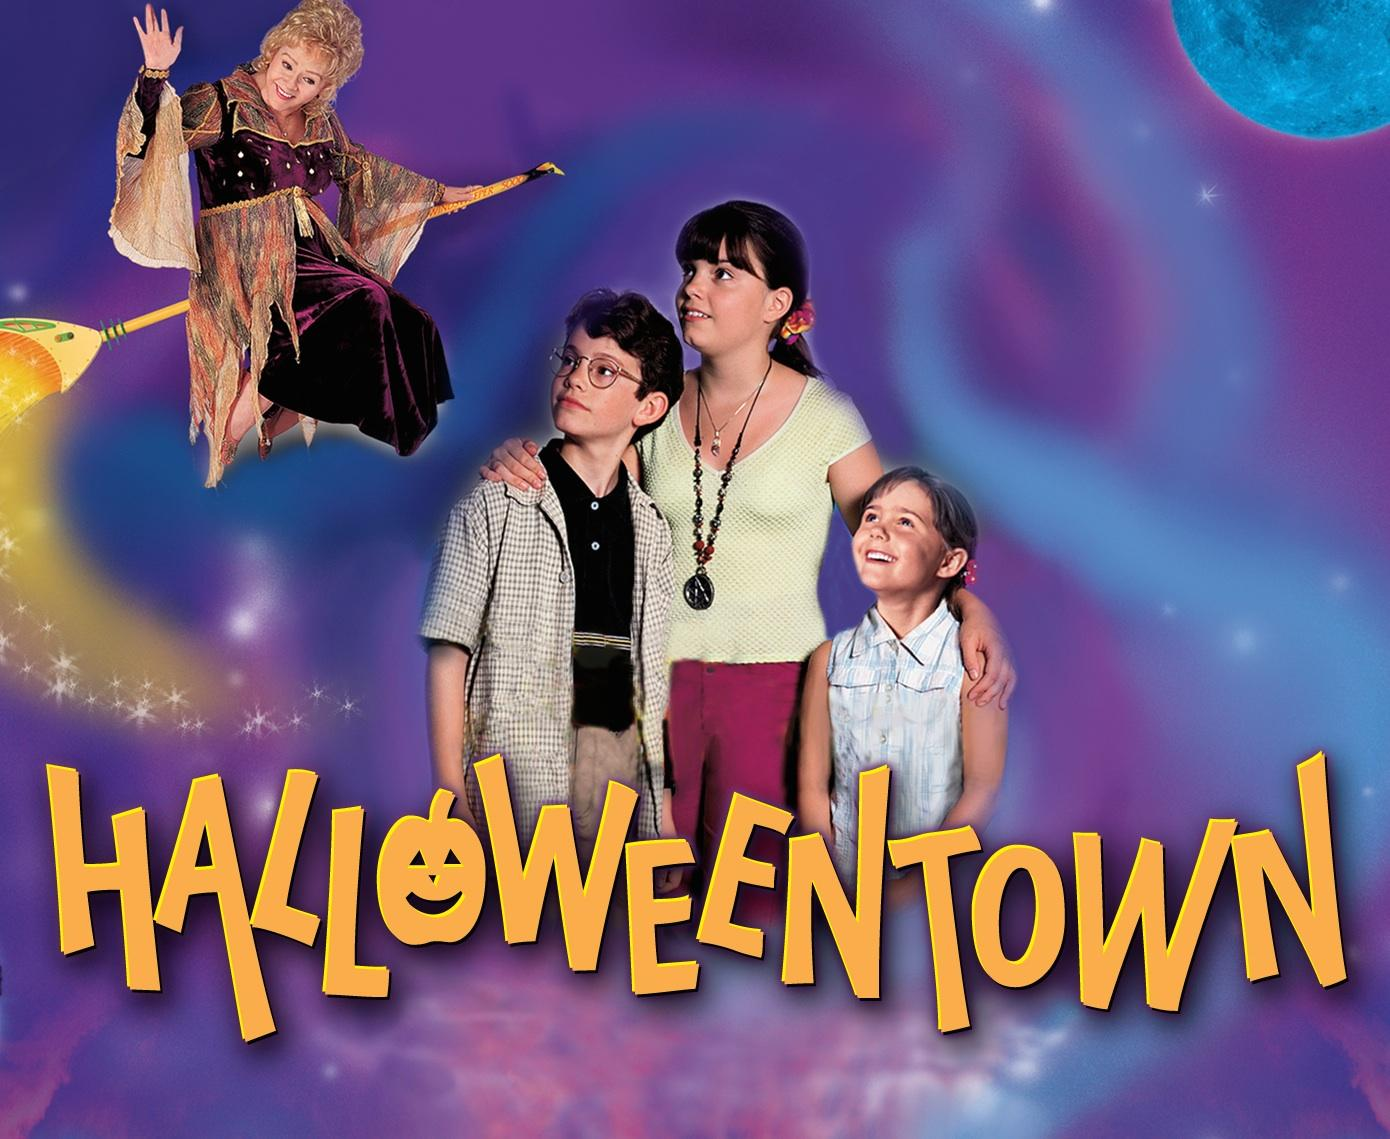 cab u0026 39 s halloween movie night featuring halloweentown